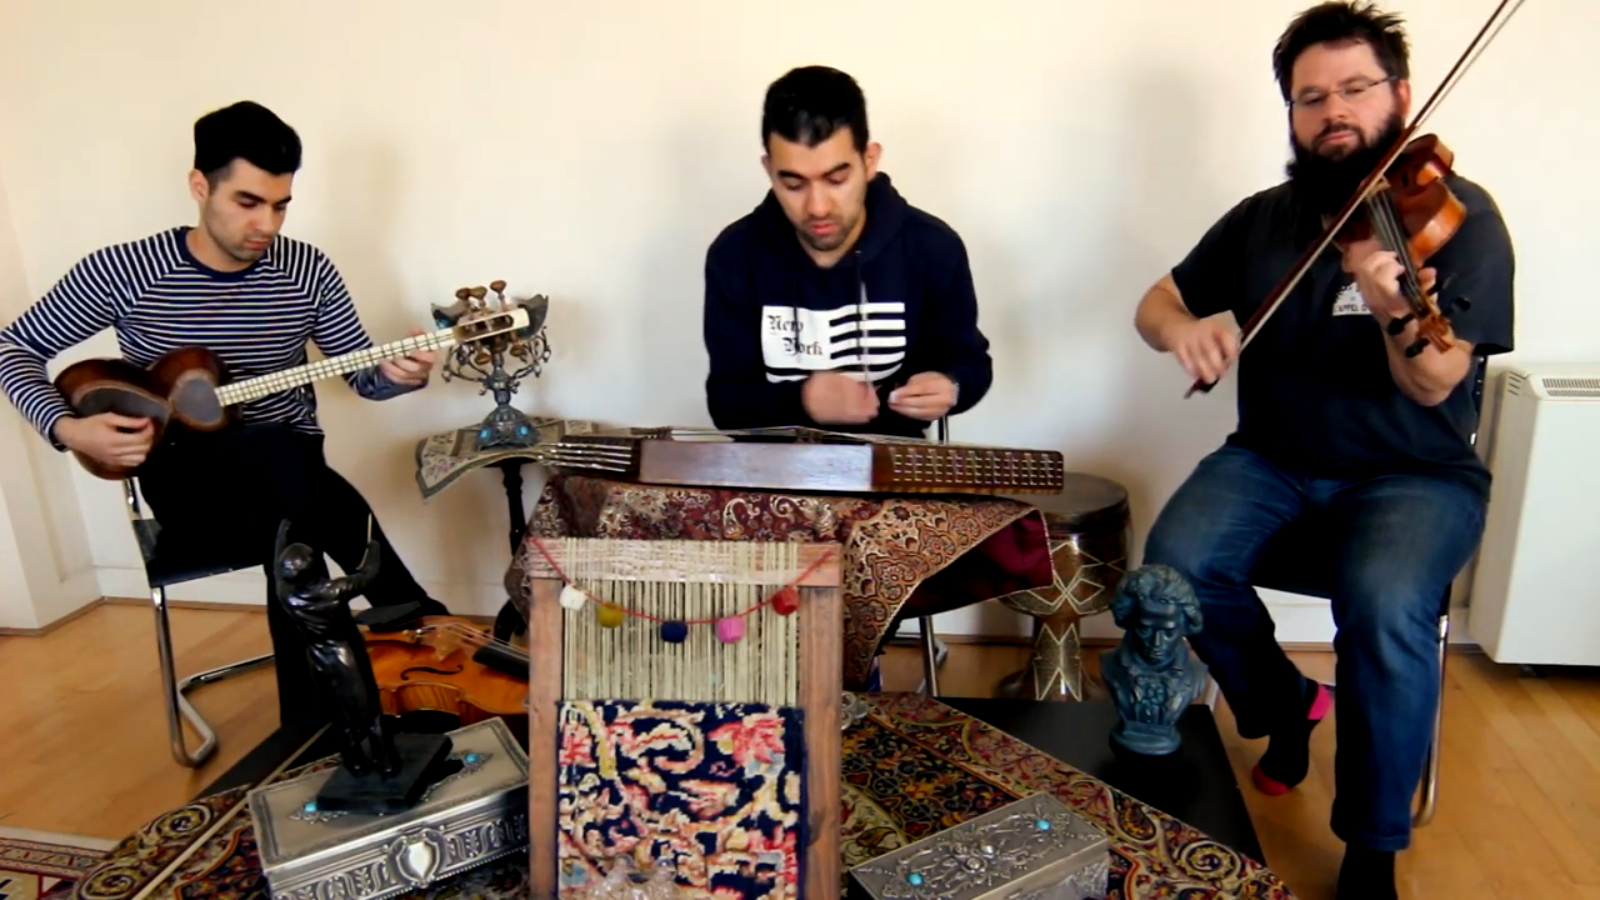 Shayan & Shahab Coohe – Citizens of the world